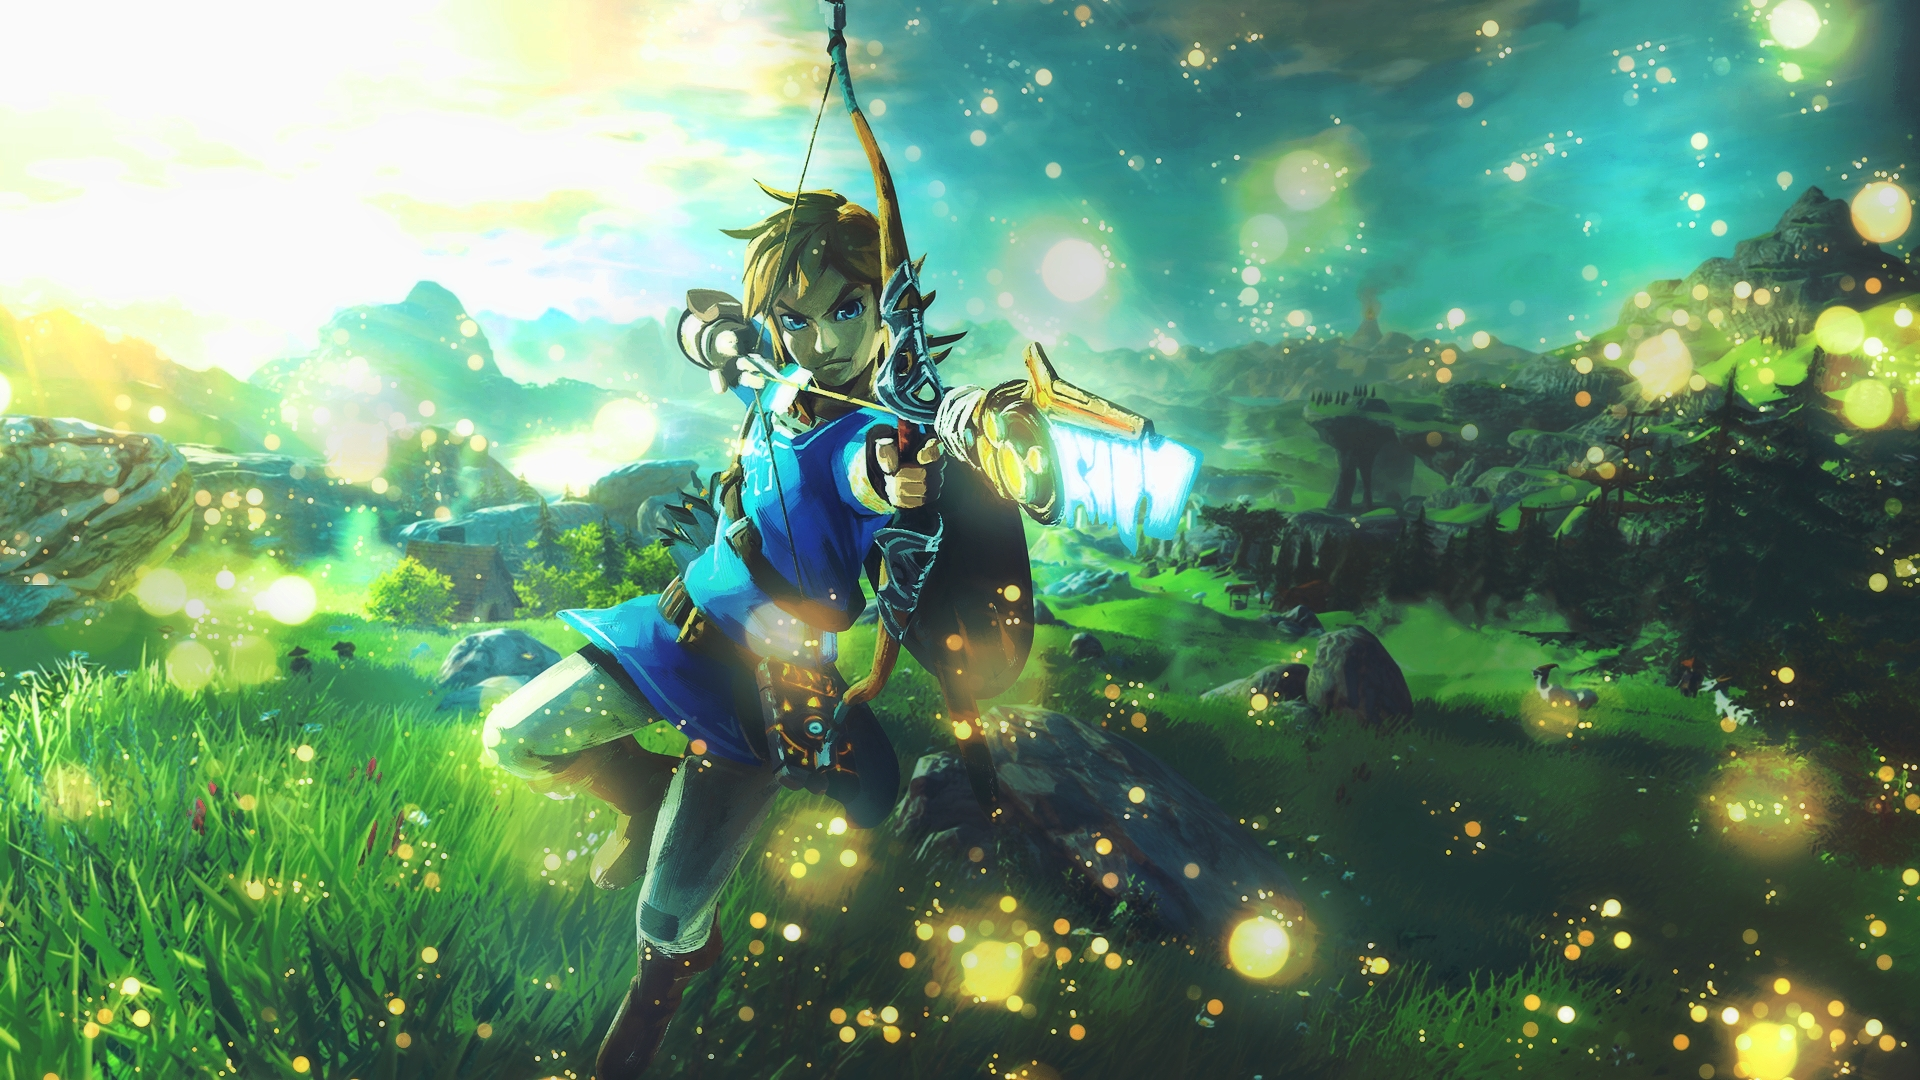 ... download Link (Breath of the Wild) image